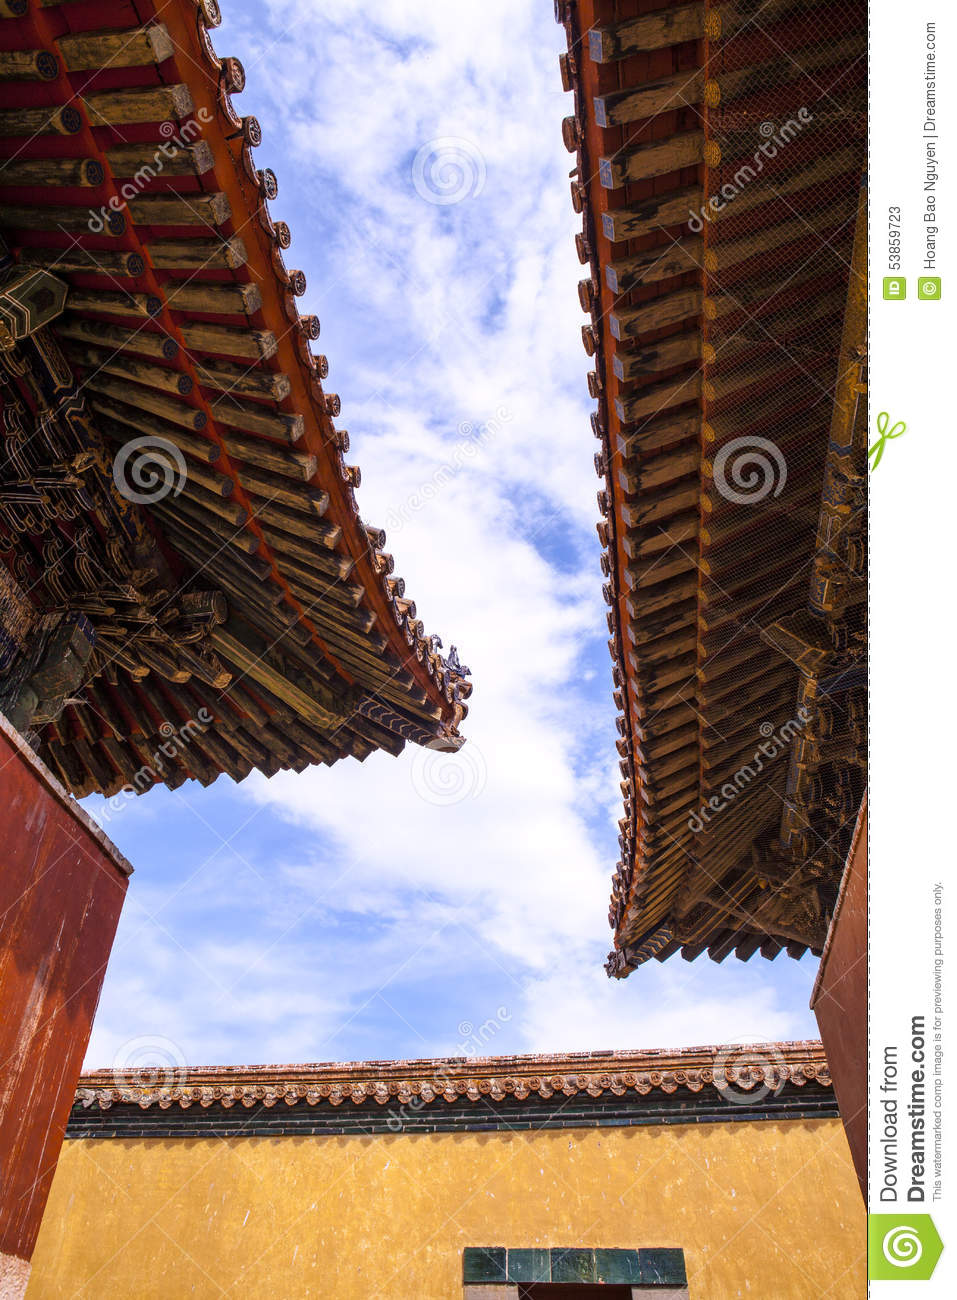 The Roof of Monastery in Mongolia